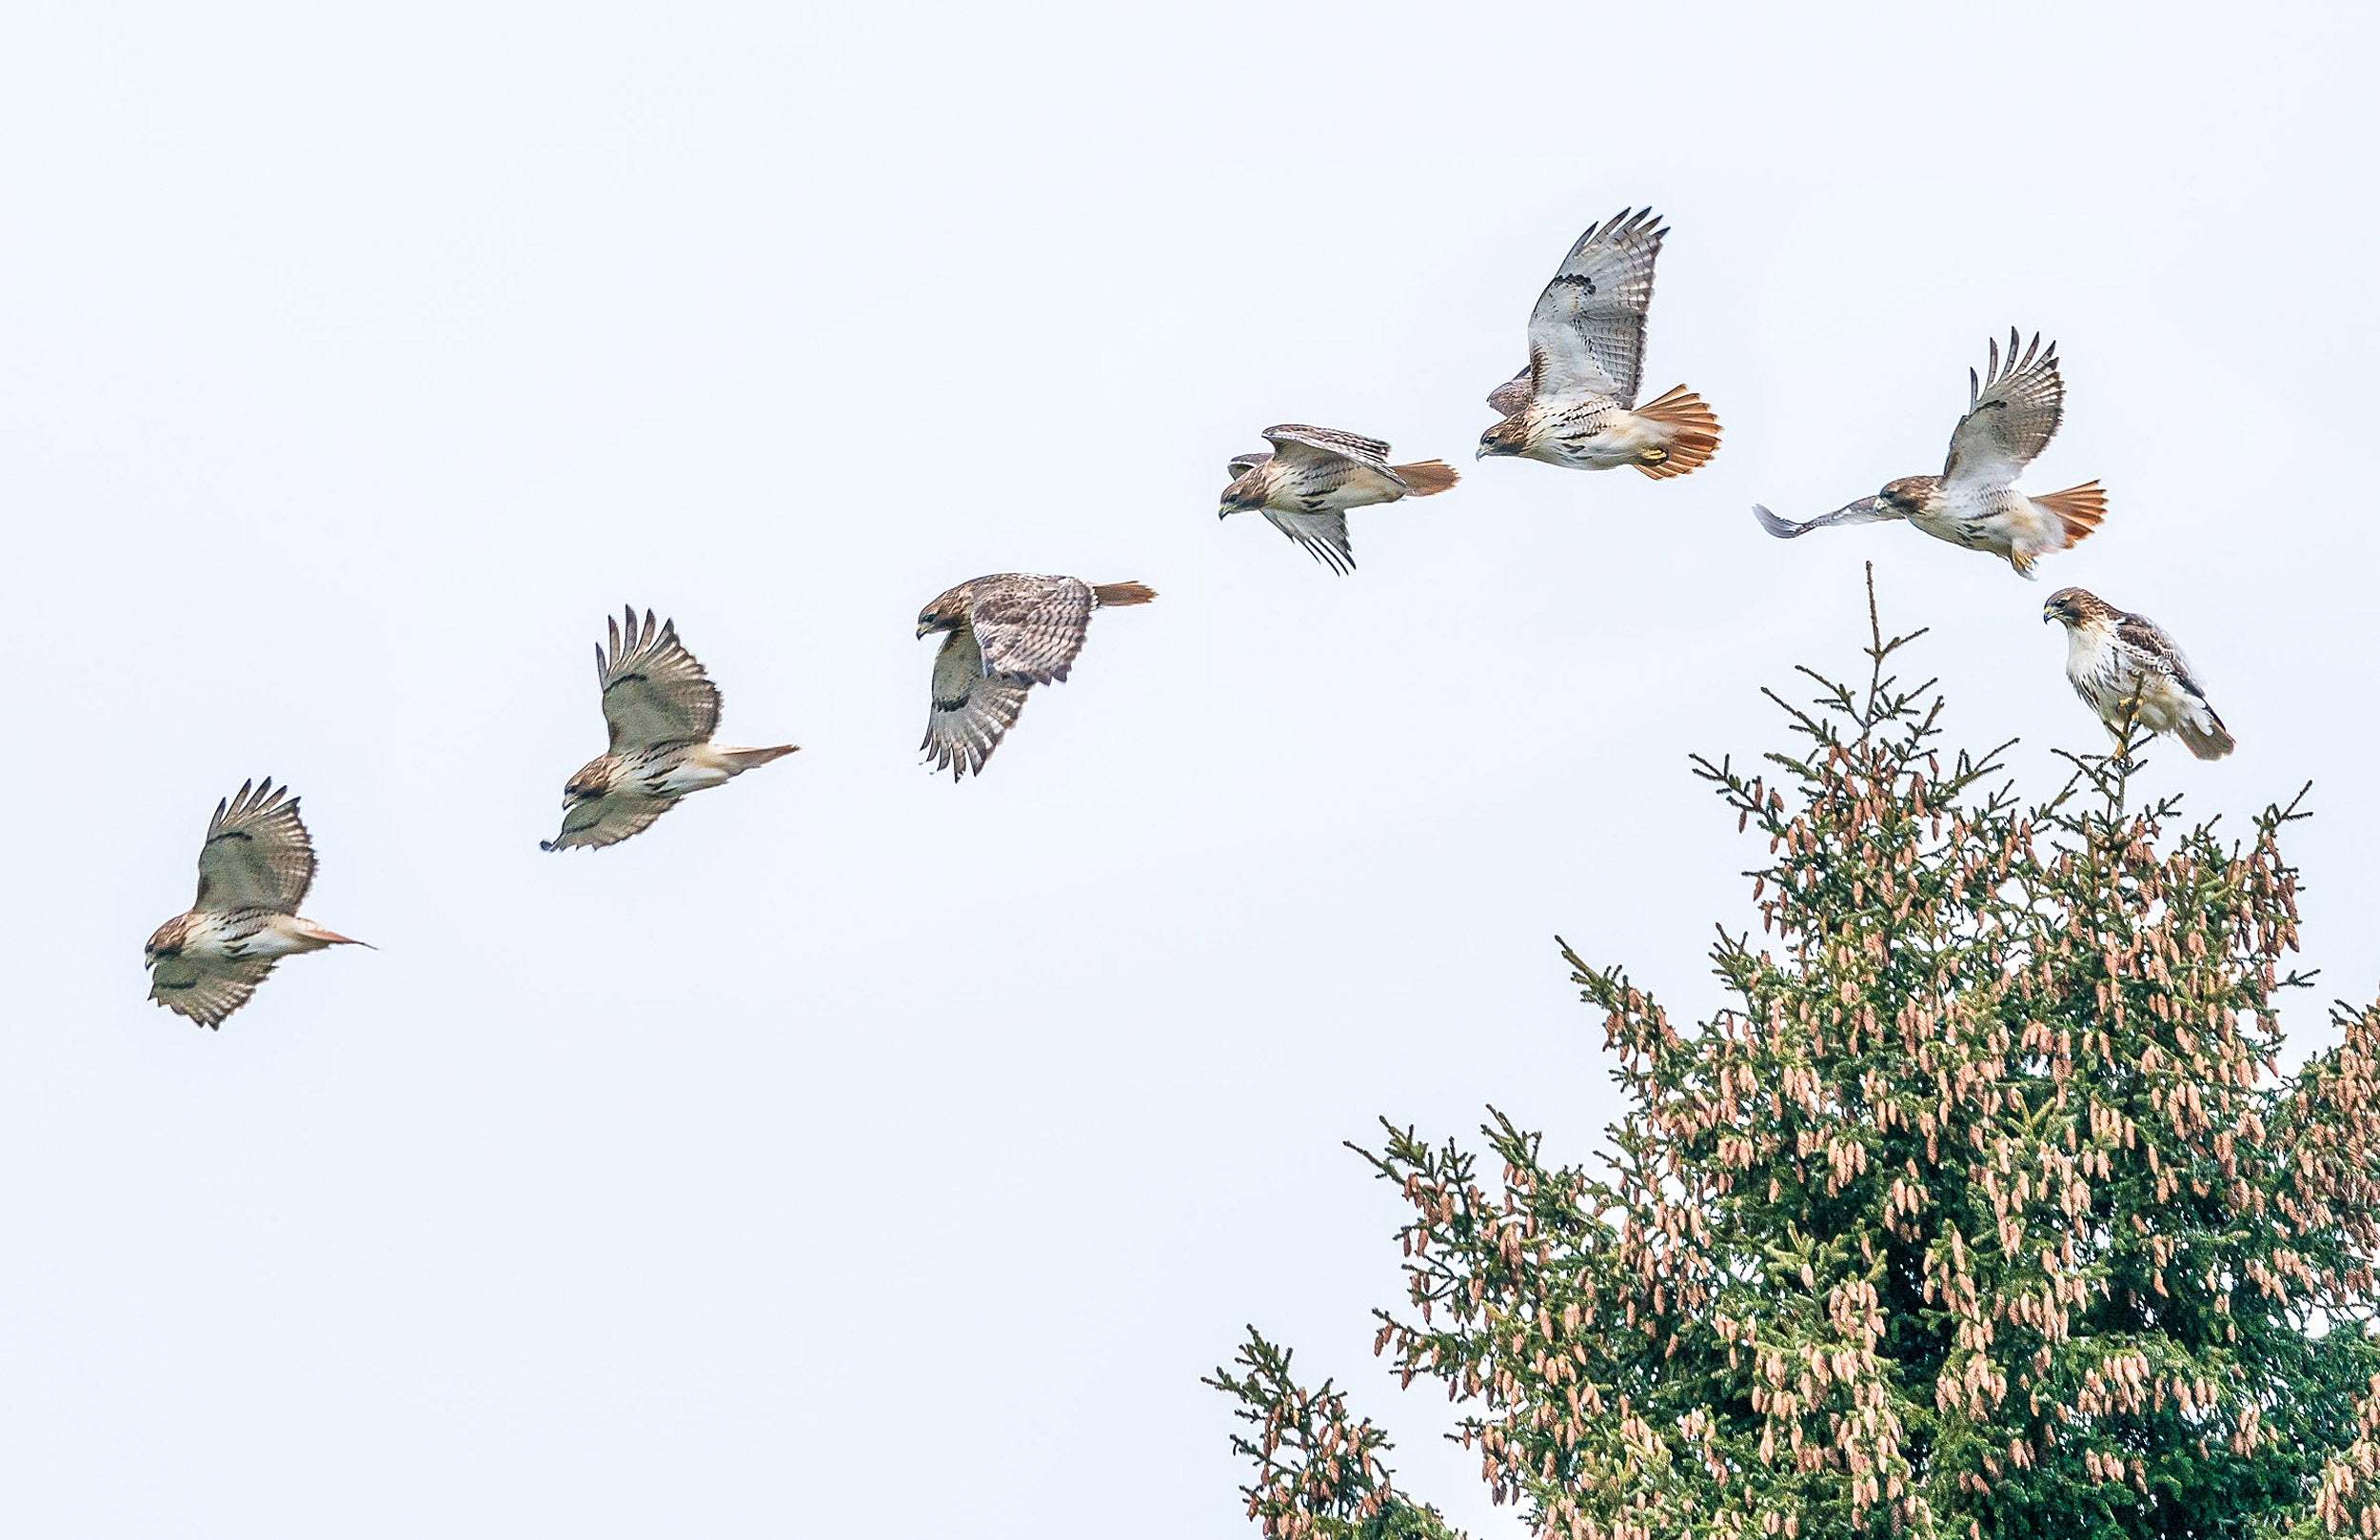 Red-tailed hawks on Norway spruce.